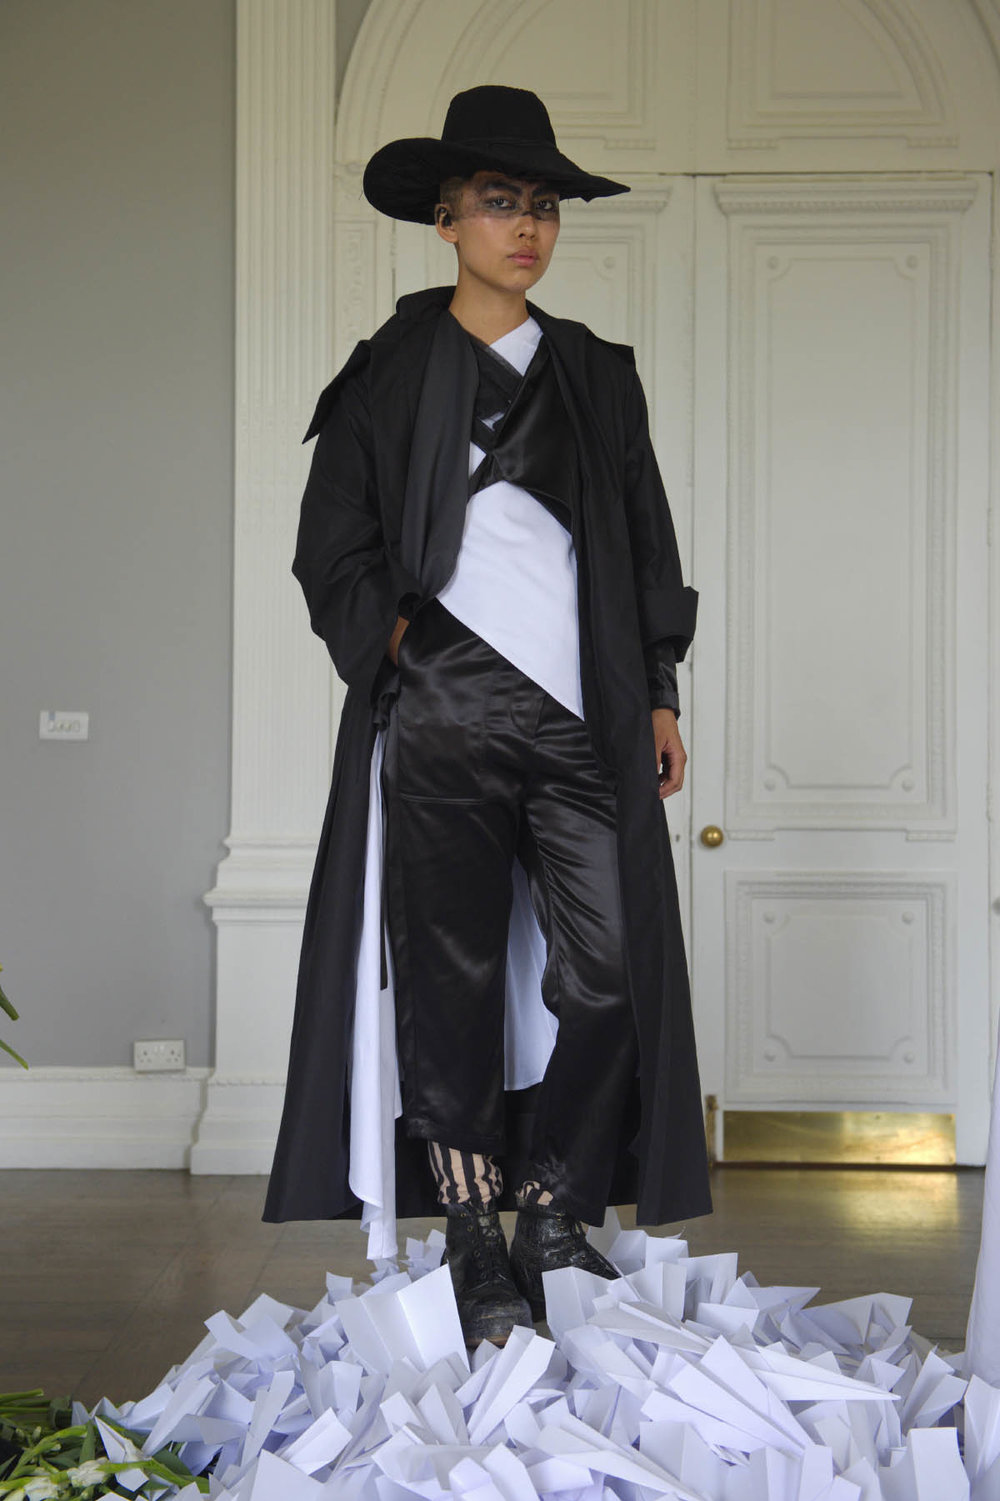 003B PHOEBE ENGLISH SS17 LOOK 4 - THE SMUGGLER.jpg